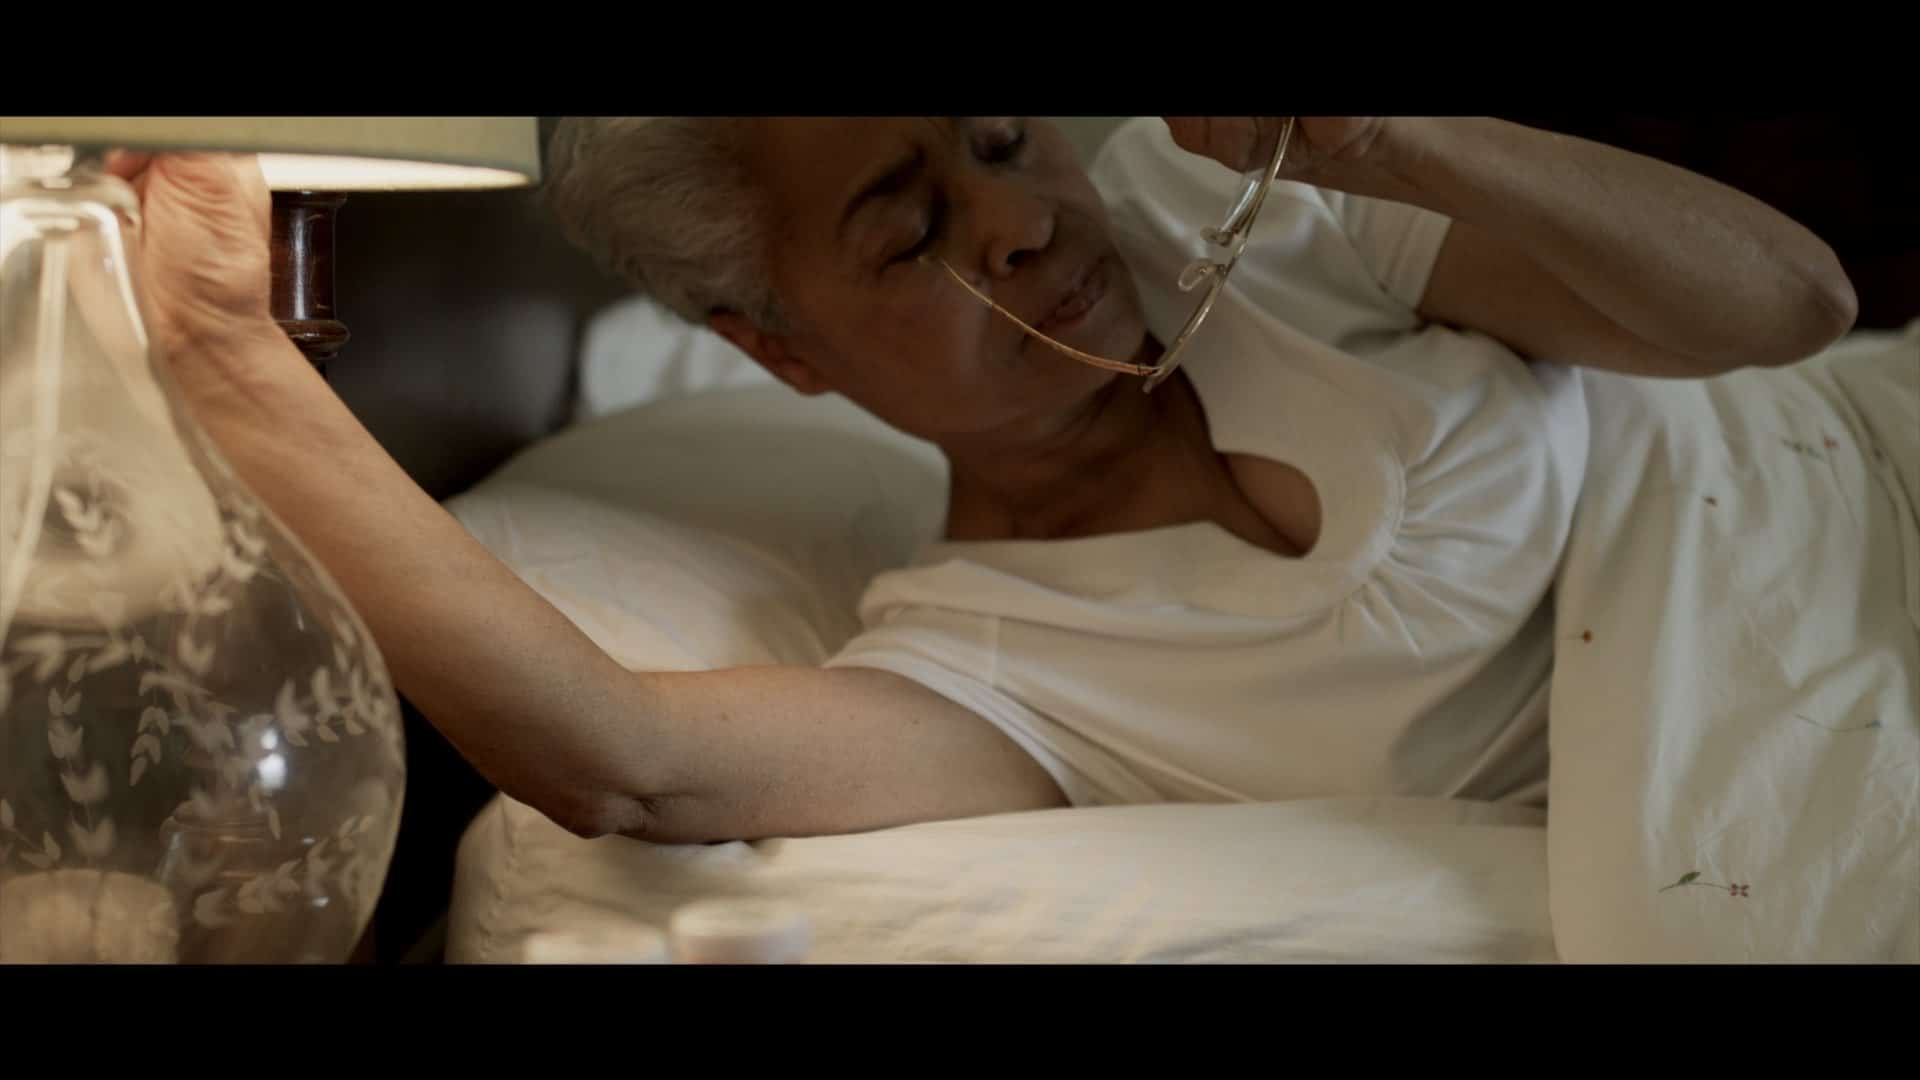 old lady waking series of library shots 4k RED shooting and davinici resolve color correction